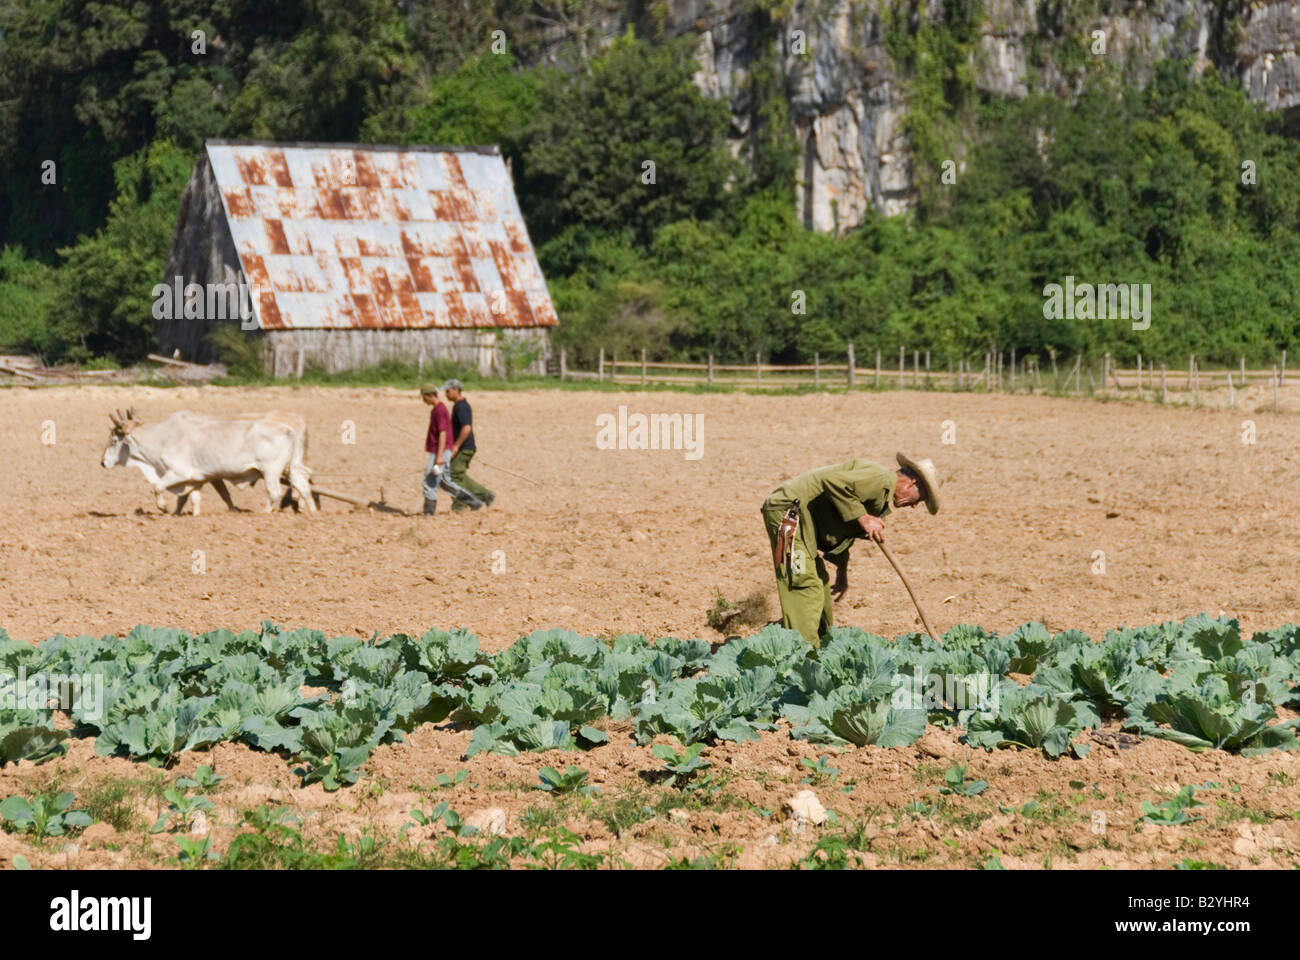 Cuban workers tilling the soil on a communal farm in the countryside of Vinales Cuba - Stock Image